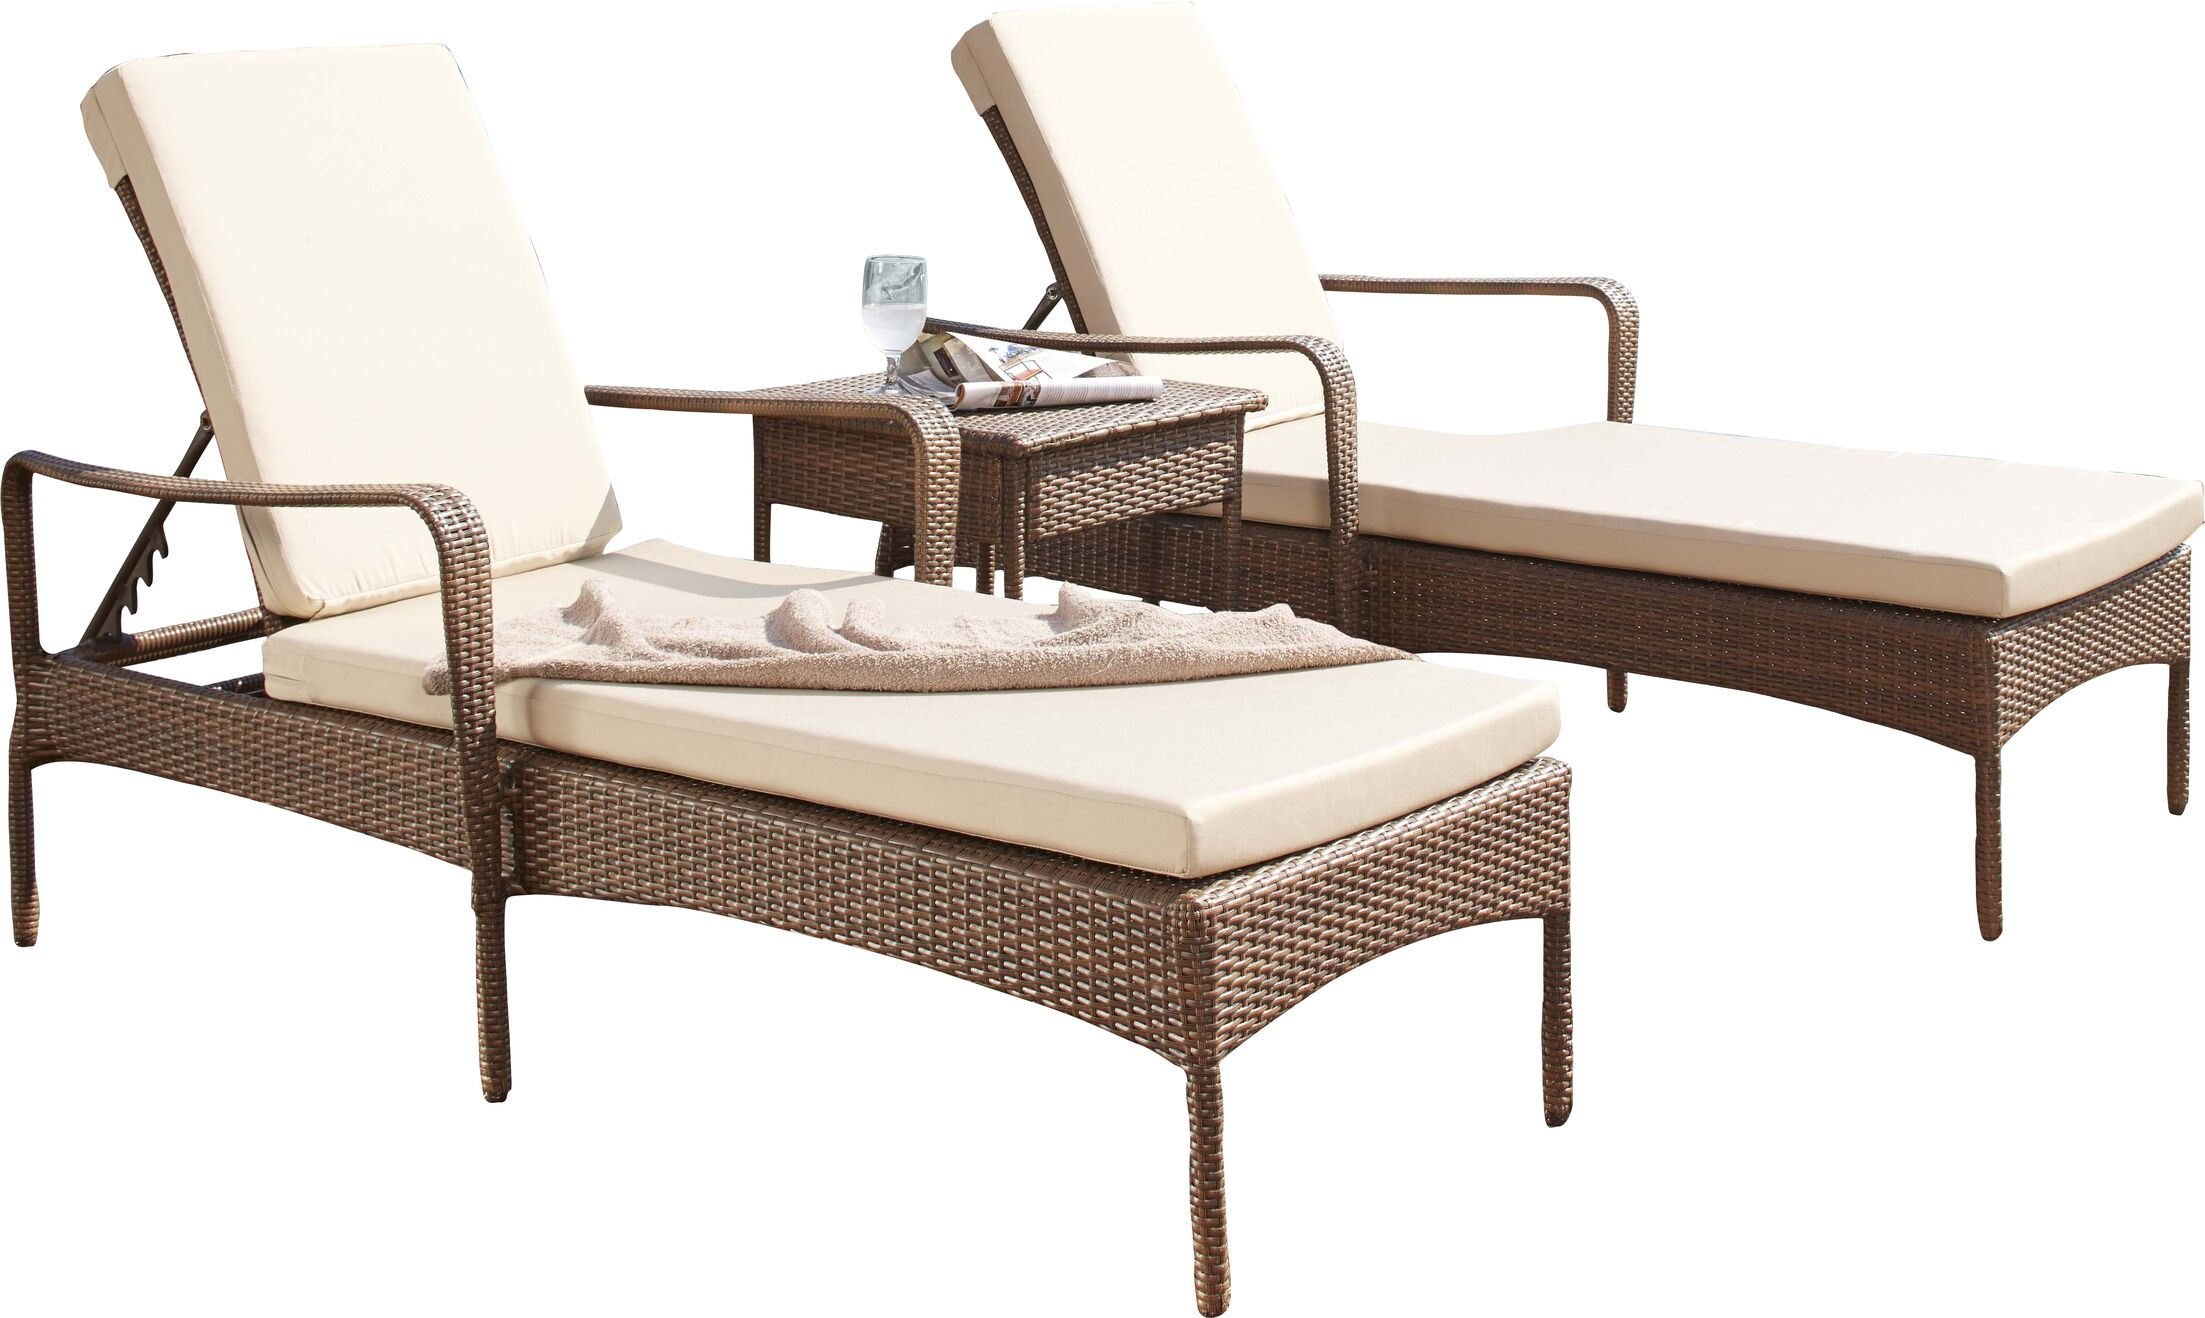 Key Biscayne Sun Lounger Set with Cushions and Table Color: Dupione Bamboo